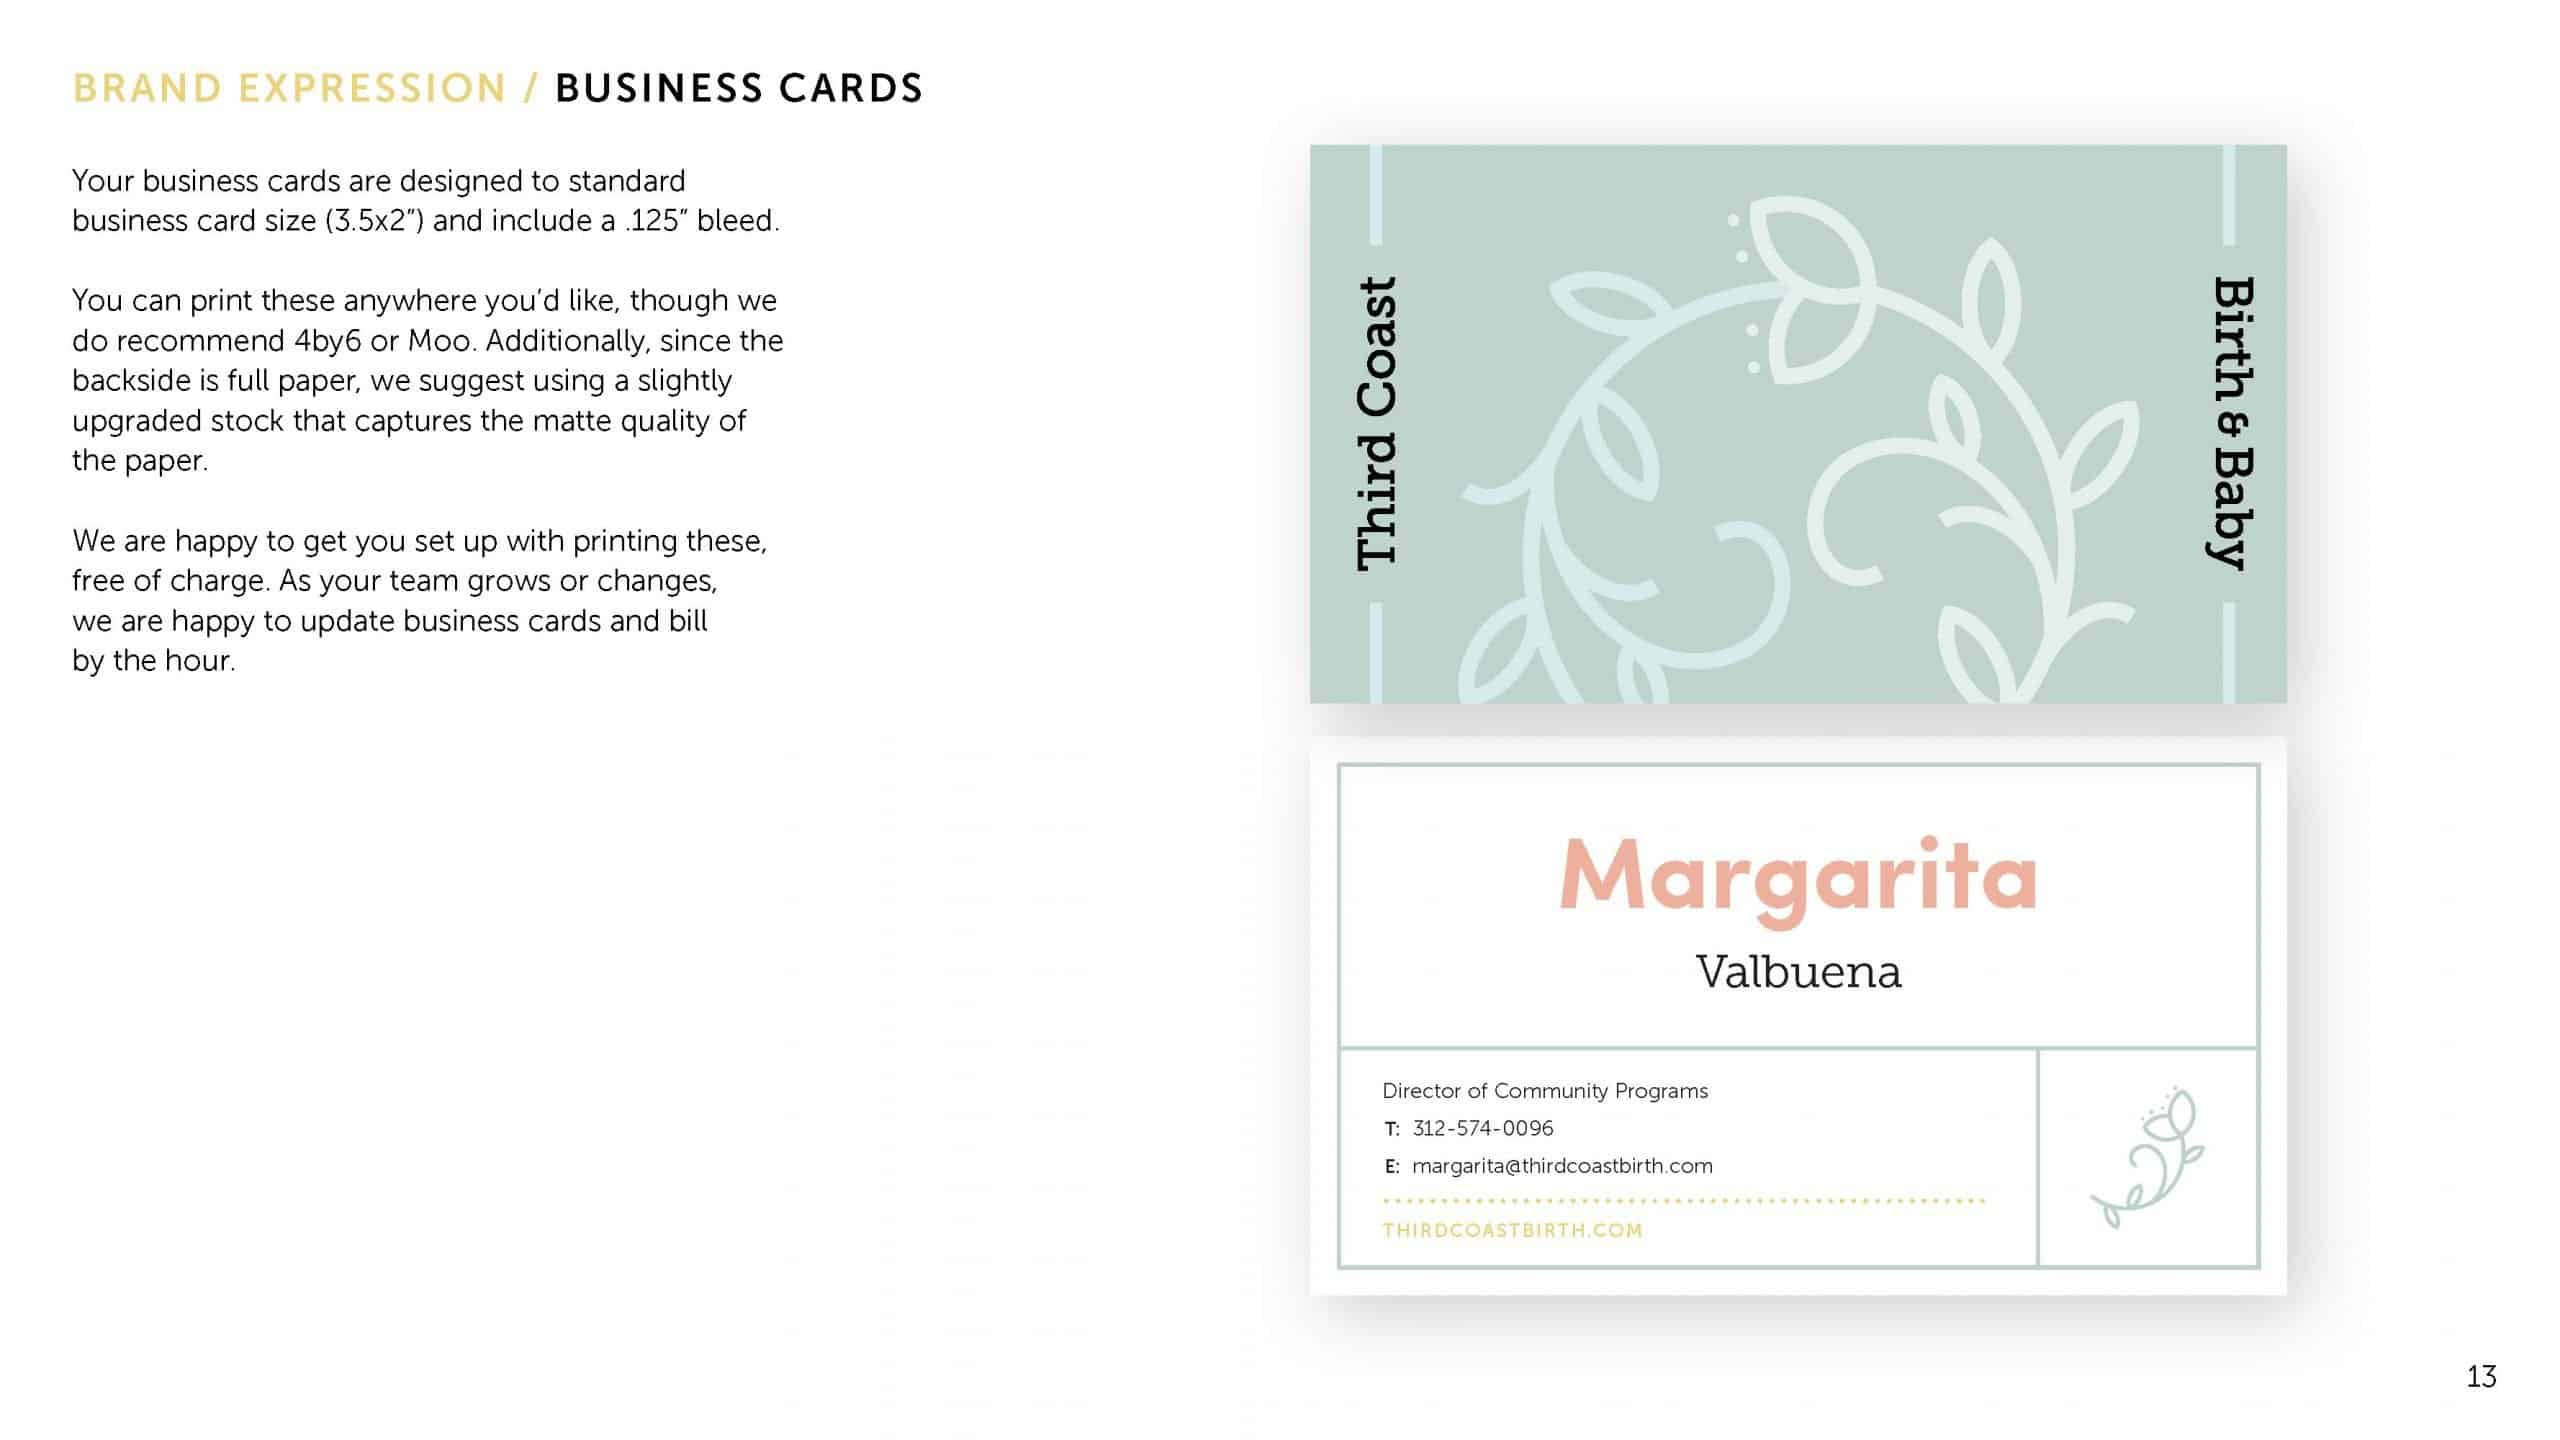 Brand guideline page explaining business card design and usage for Third Coast Birth & Baby